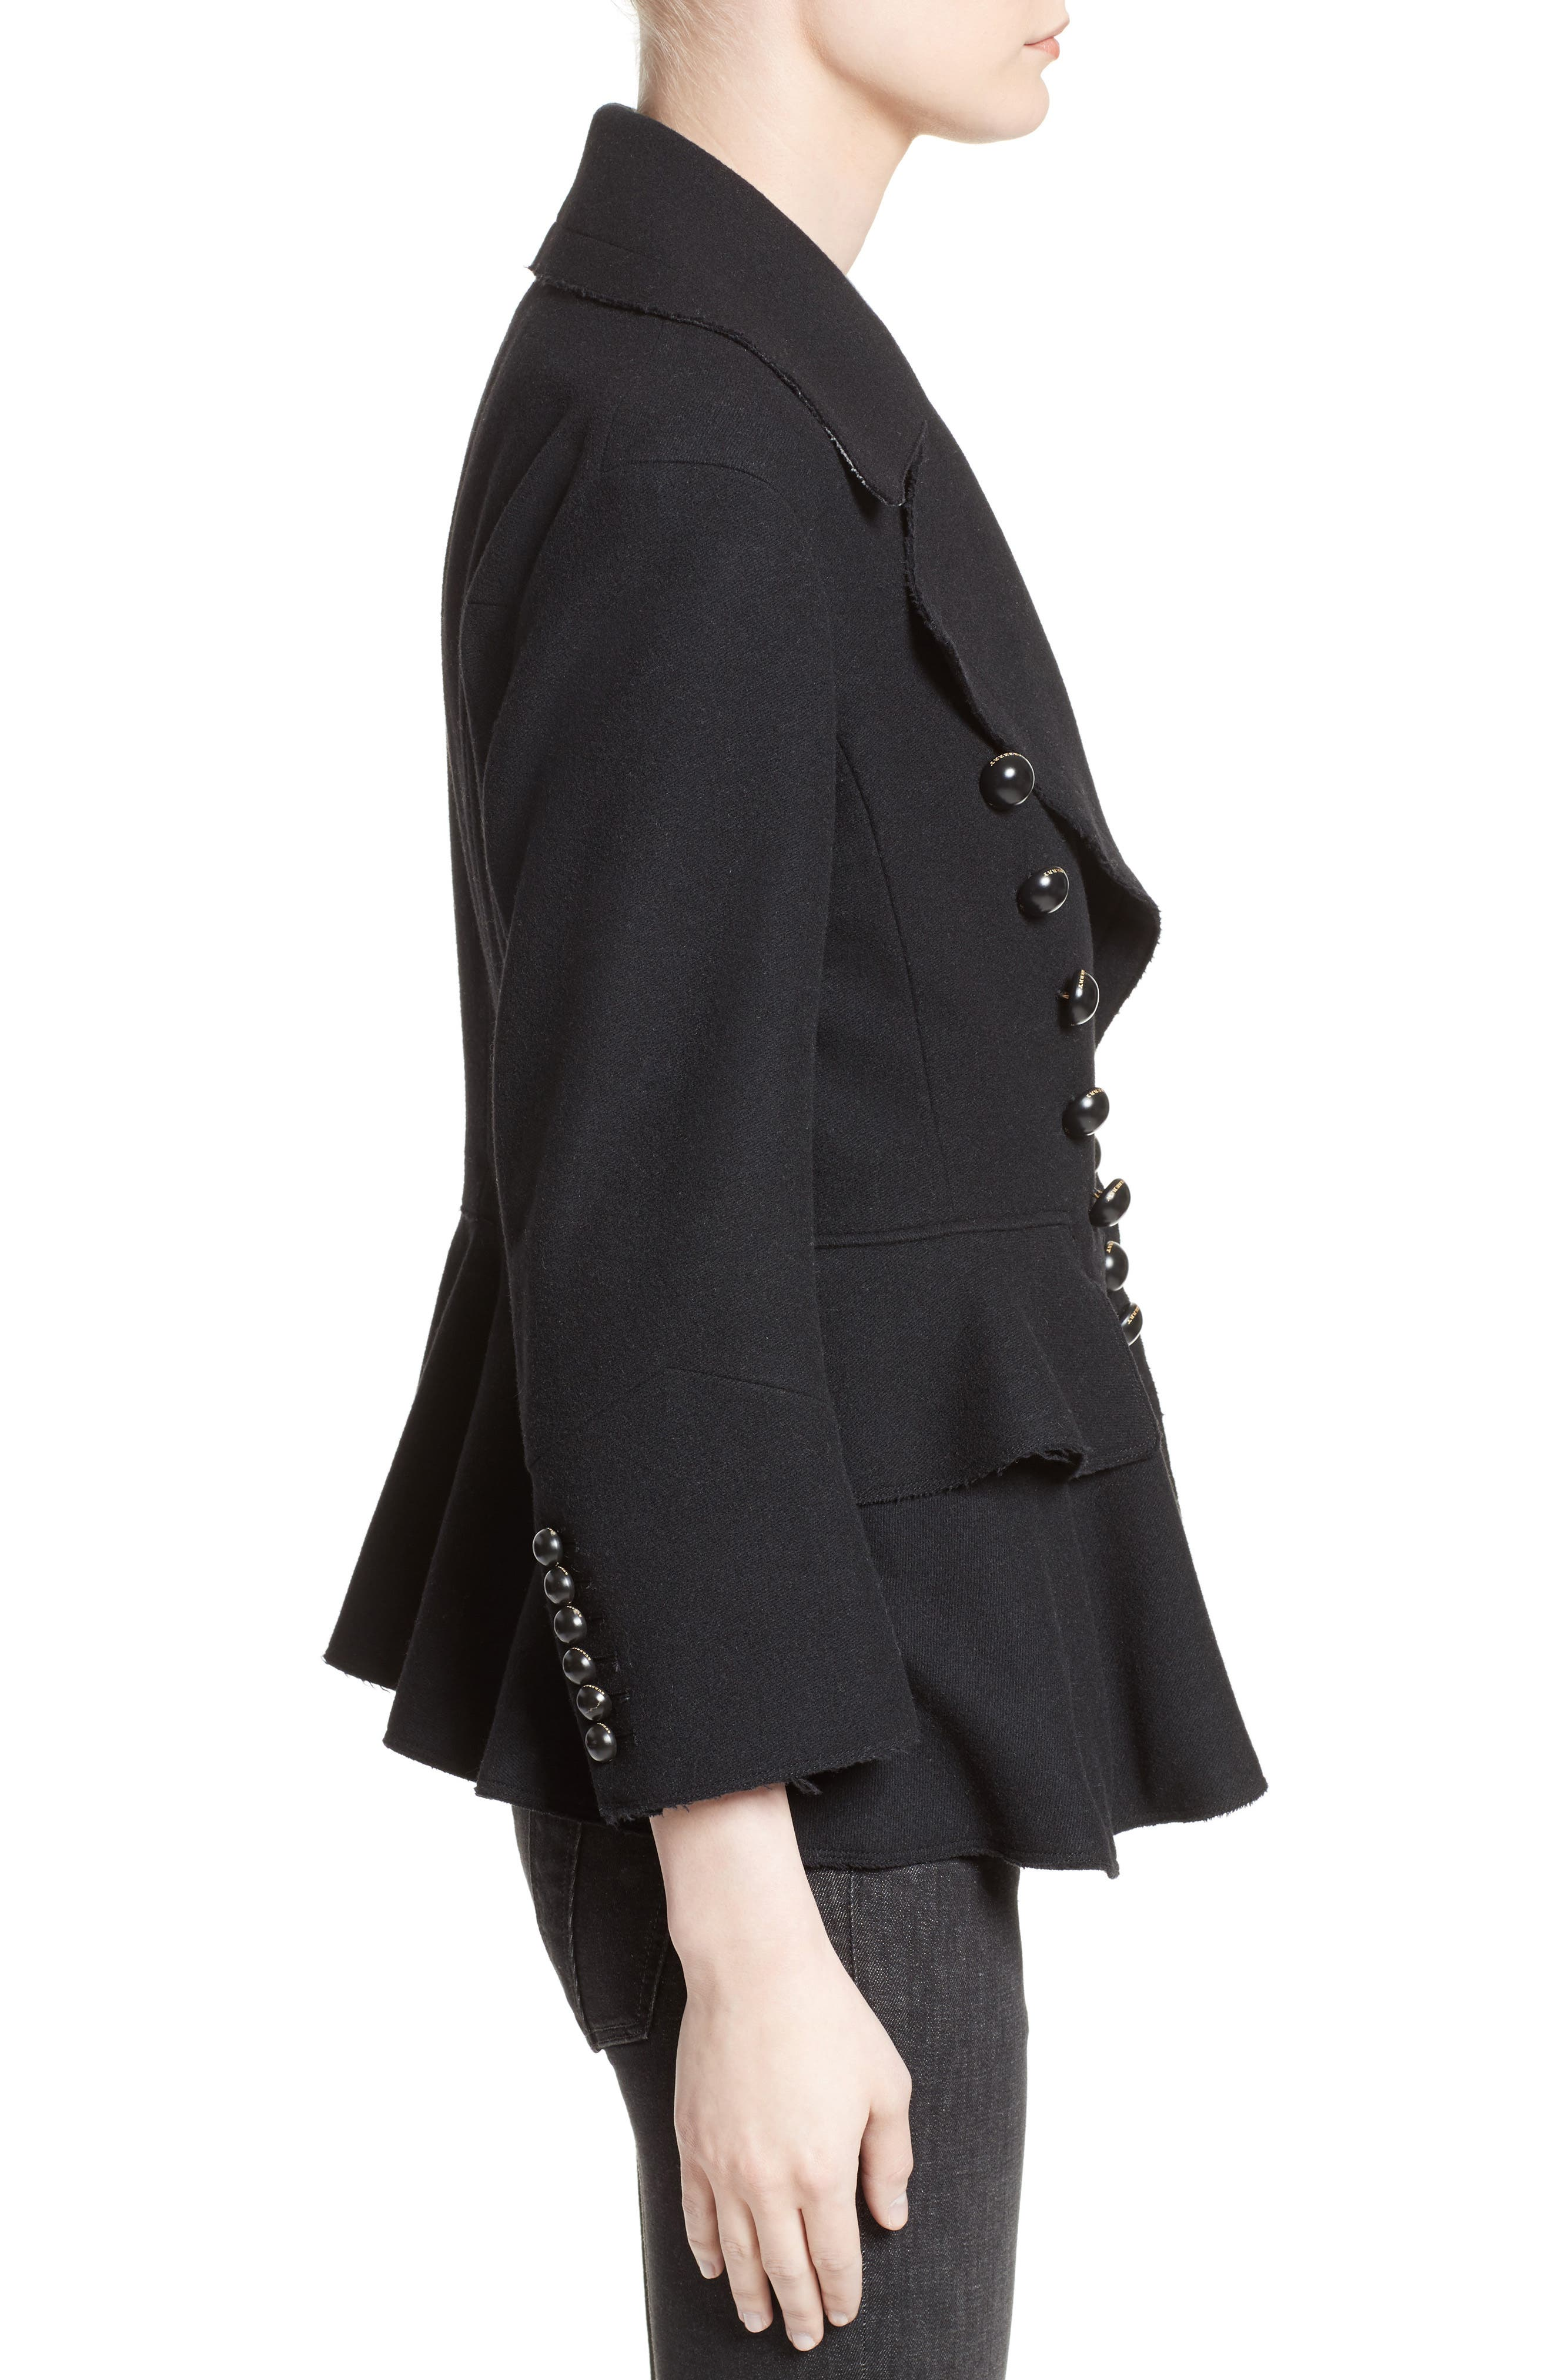 Alvingham Wool Blend Jacket,                             Alternate thumbnail 6, color,                             Black